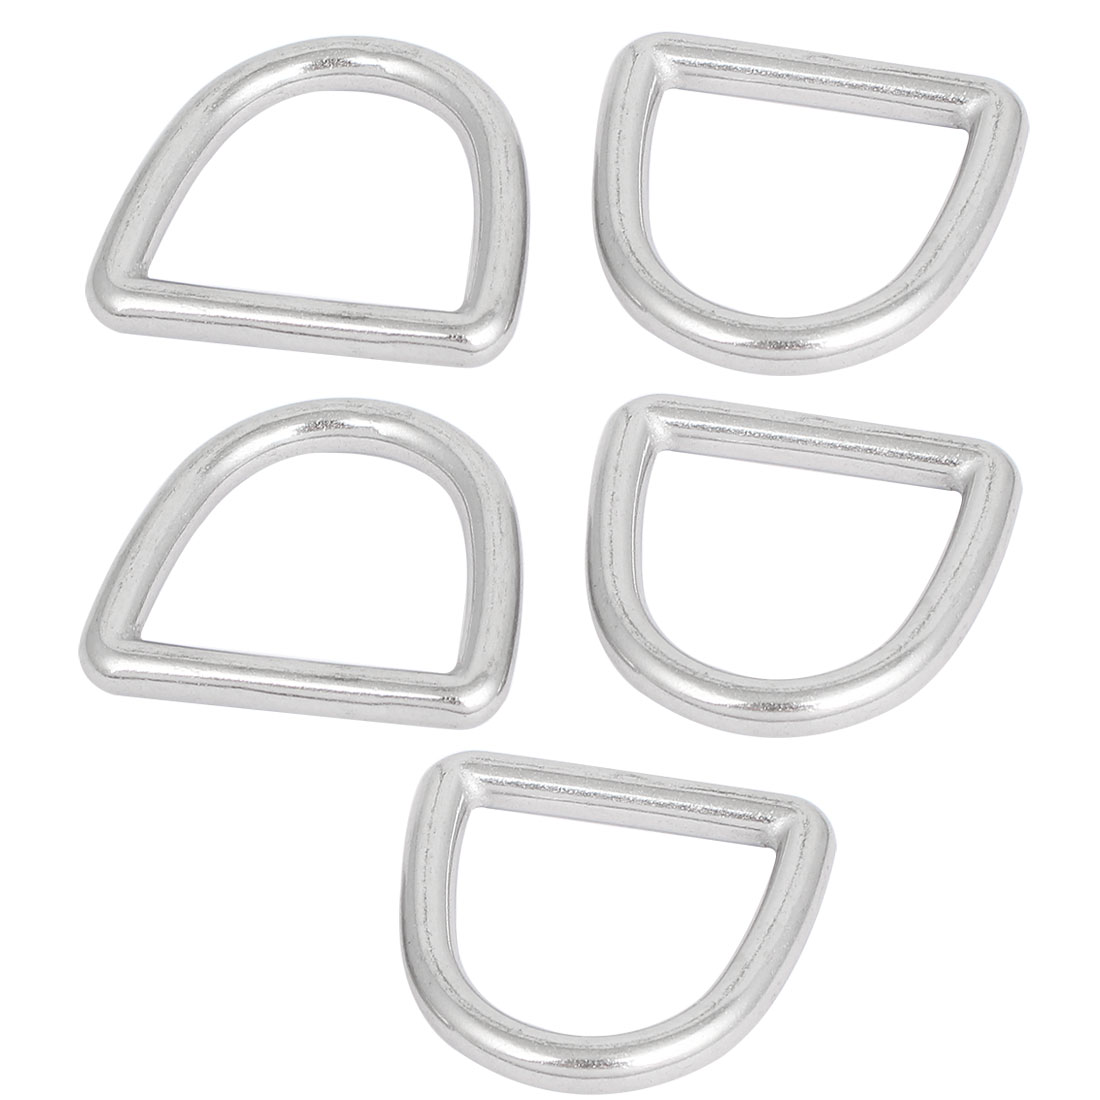 45mm x 42mm x 6mm D Ring Hooks D-Shaped Belt Buckles 5 Pcs for Handbag